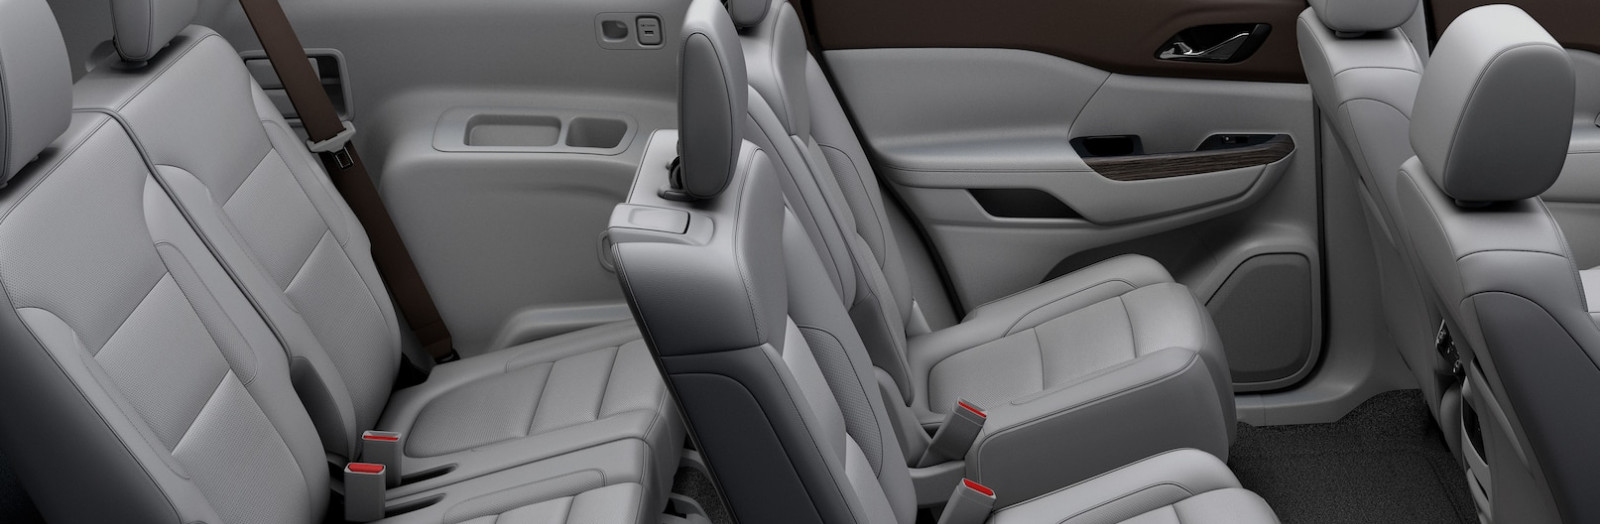 Luxurious Seating in the GMC Acadia